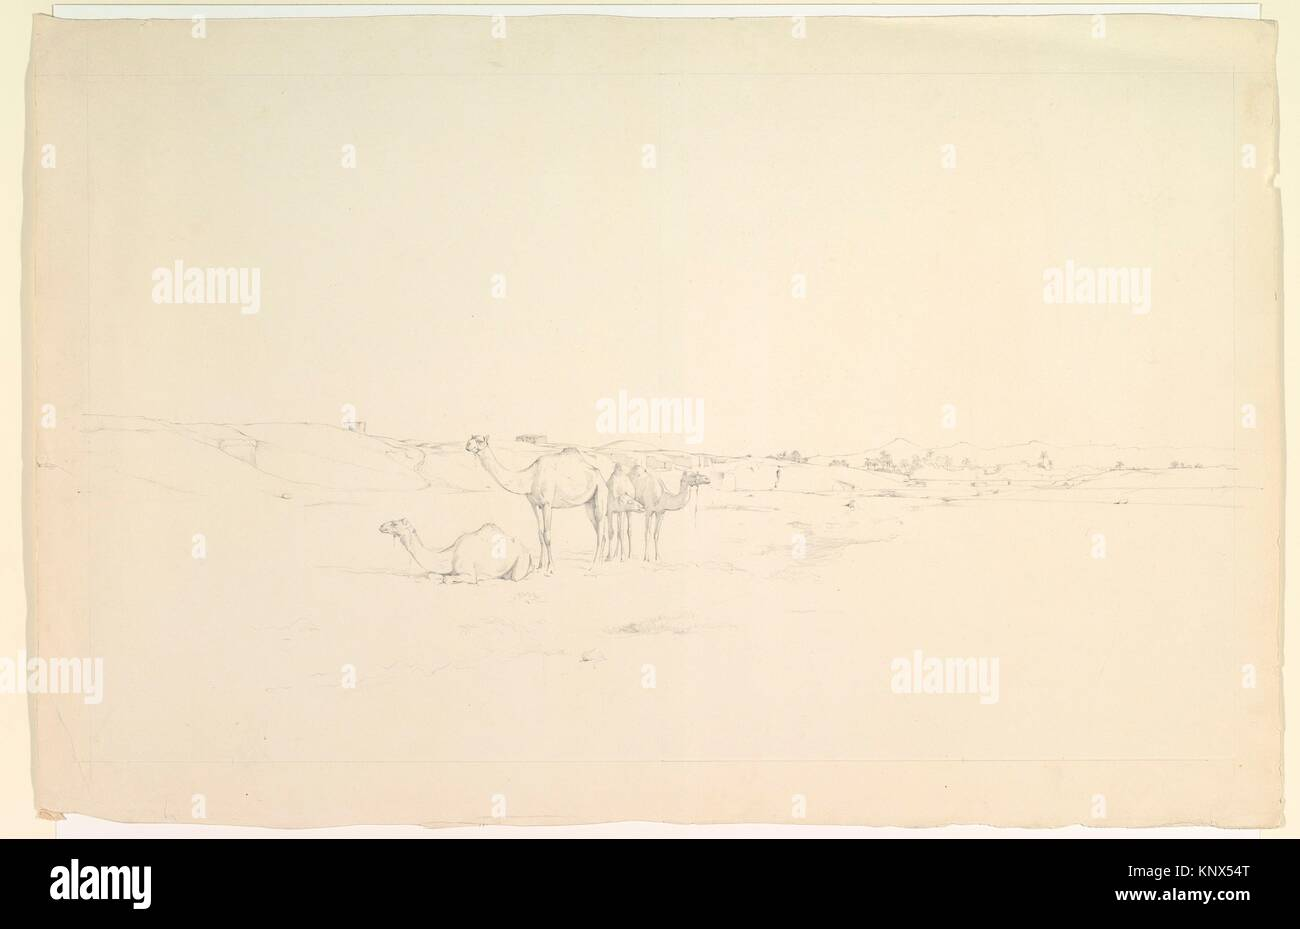 Camels in a landscape. Artist: Howard Carter (British, London 1873-1939 London); Date: late 19th-mid-20th century; - Stock Image